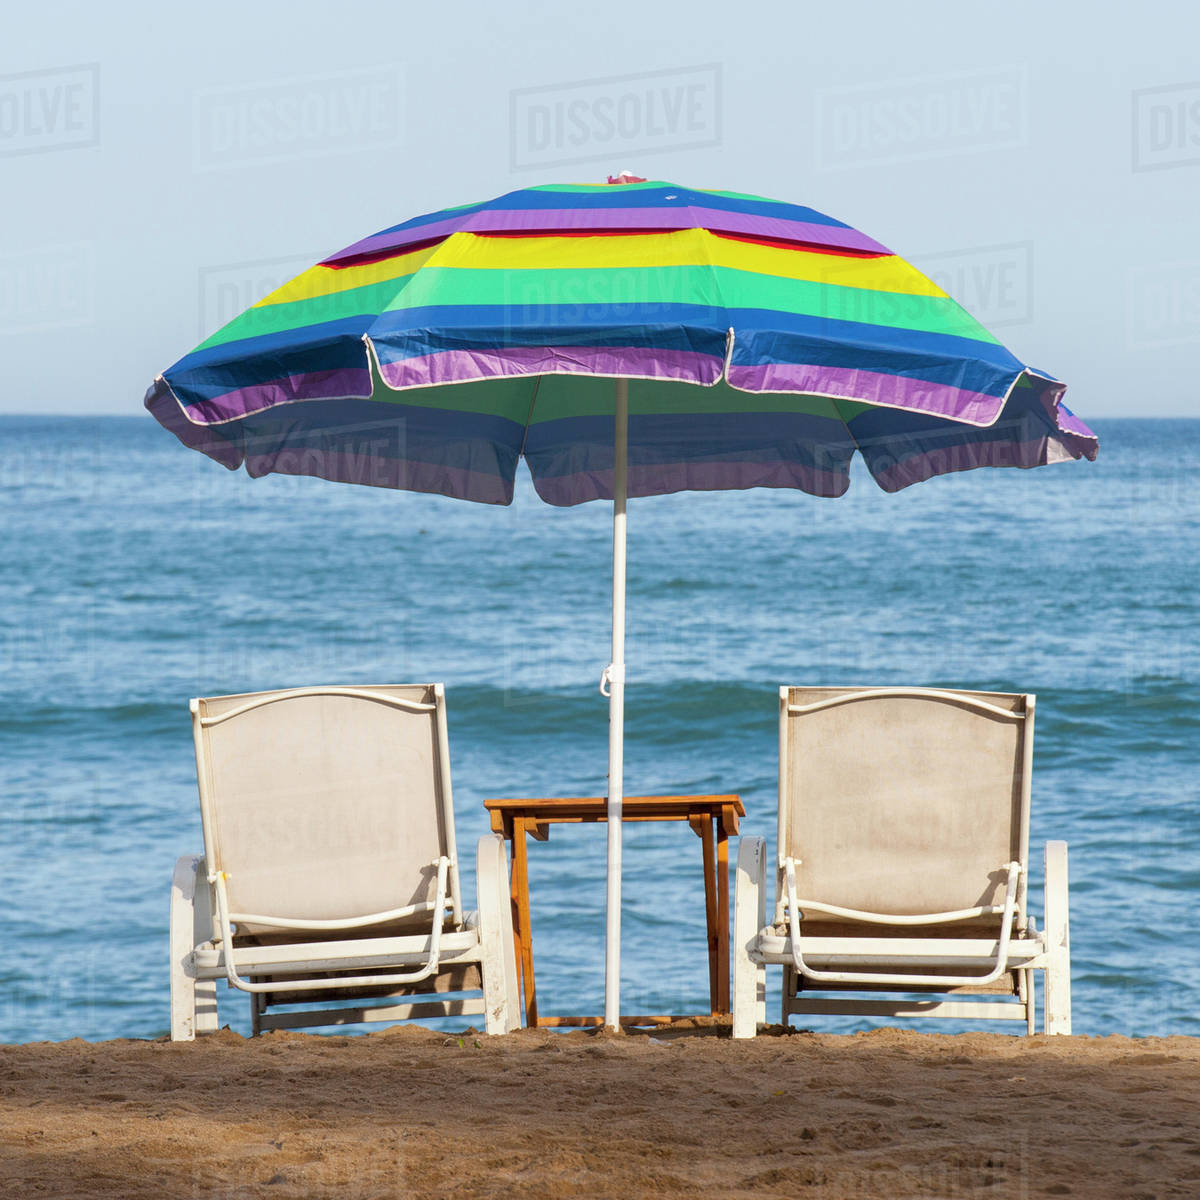 90c0814bee11 A Rainbow Beach Umbrella Over Two Lounge Chairs On The Beach At The Water's  Edge; Sayulita, Mexico